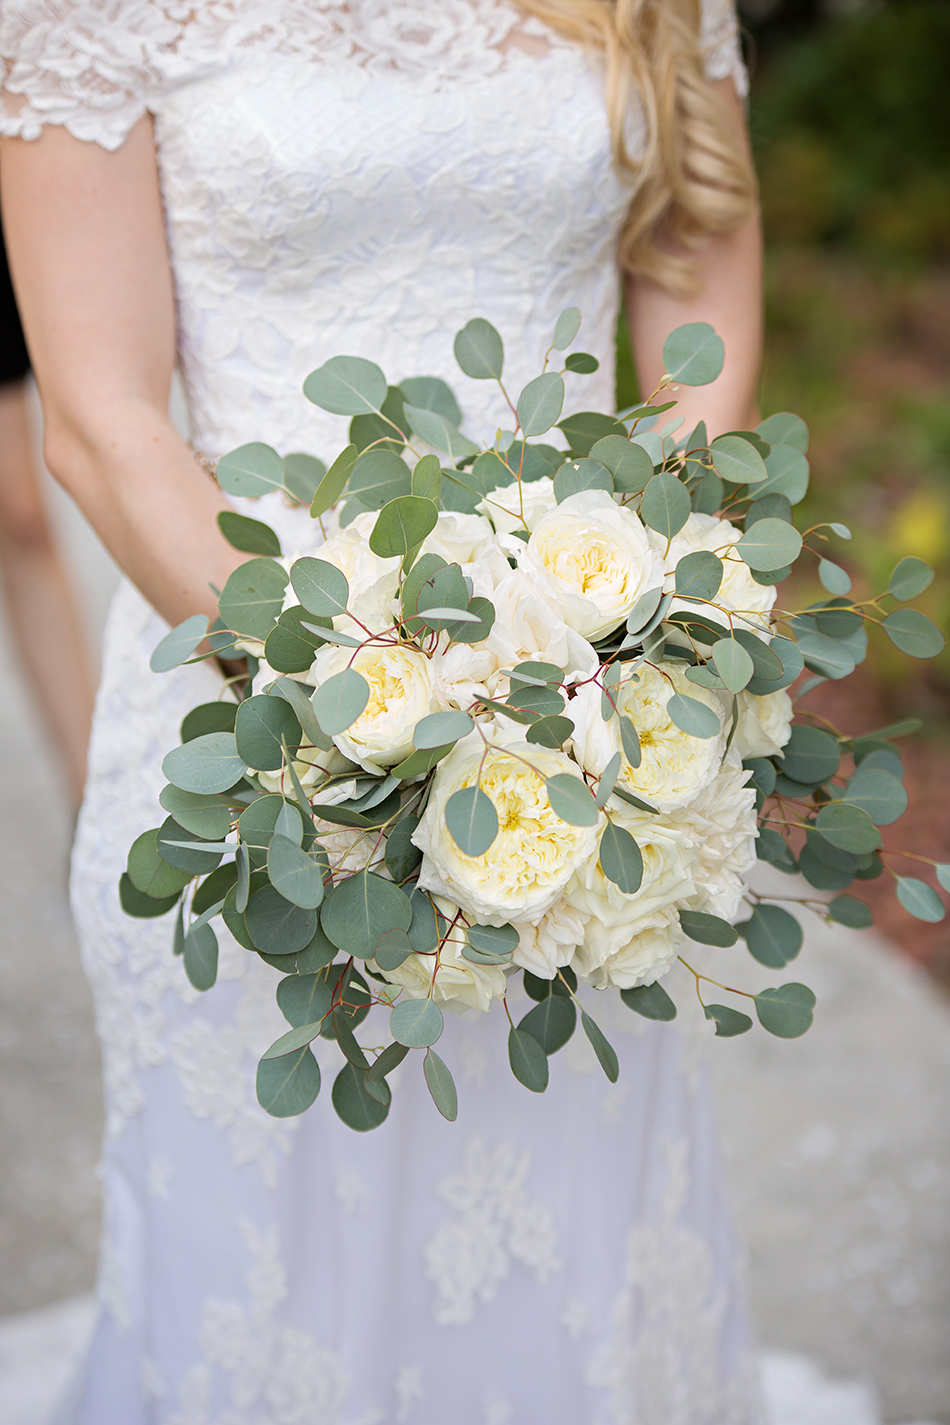 Ivory and green wedding bouquet